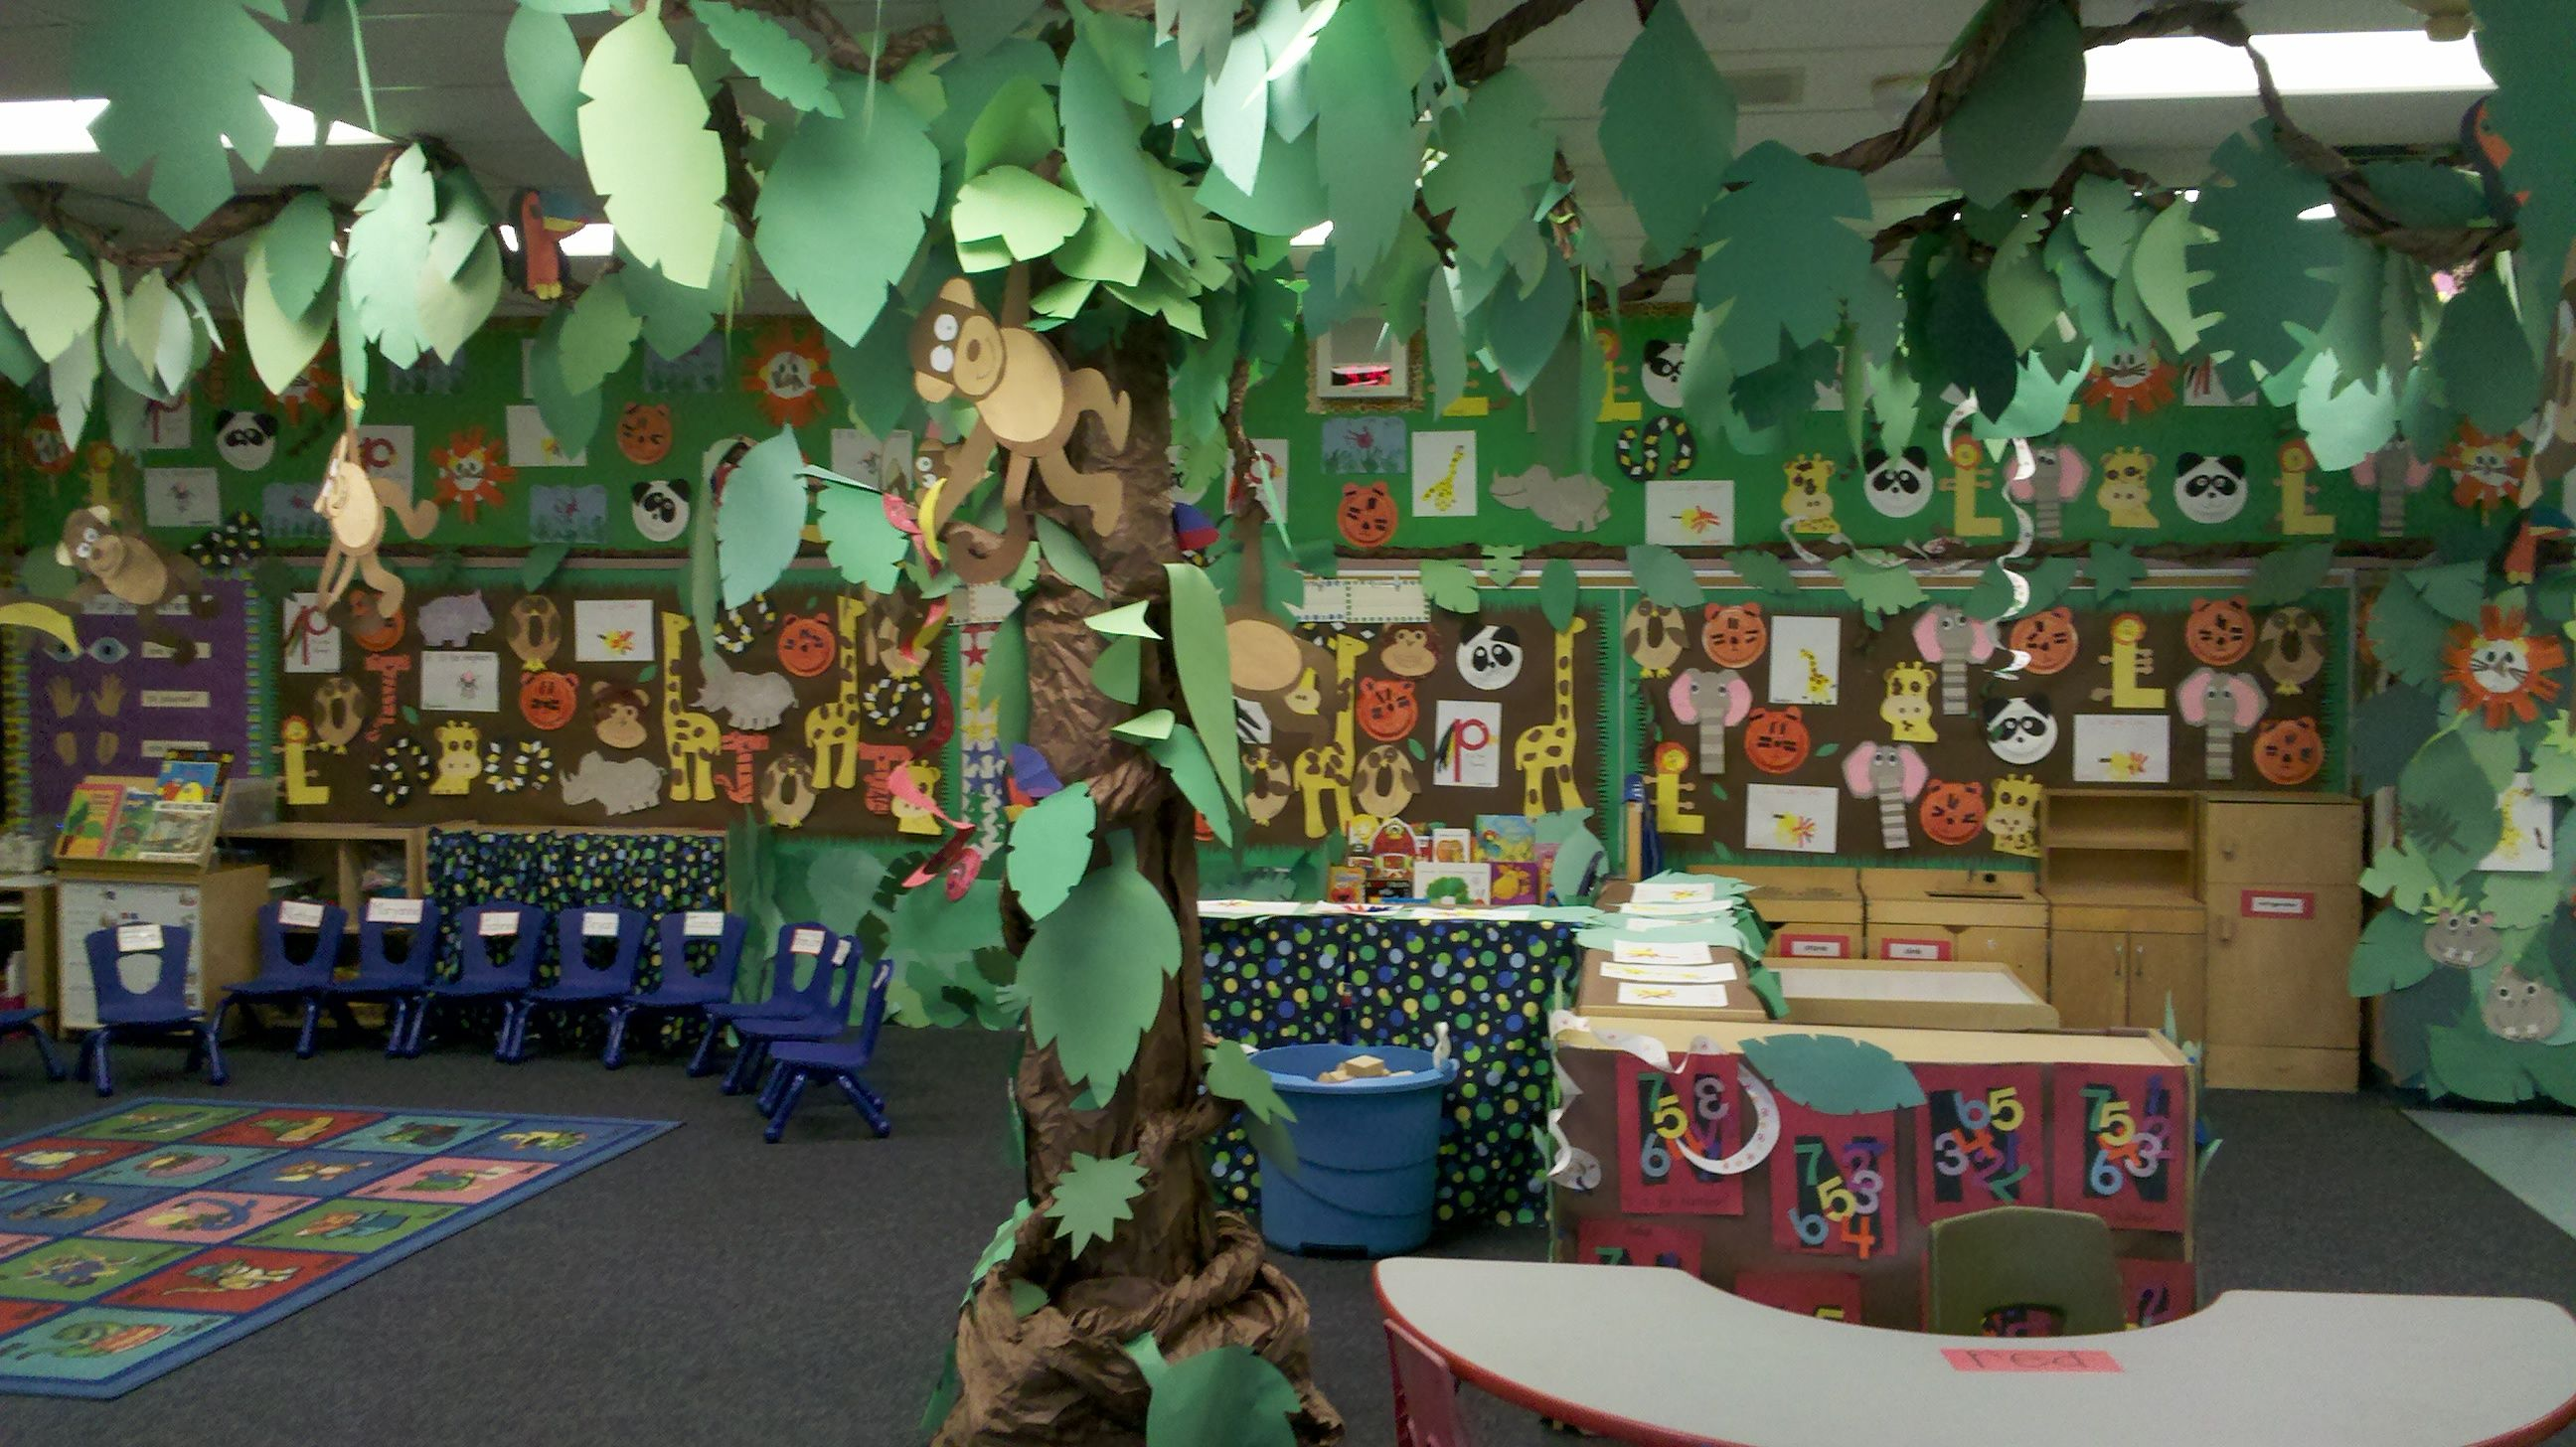 Classroom decoration jungle theme day camp 2014 for Art classroom decoration ideas